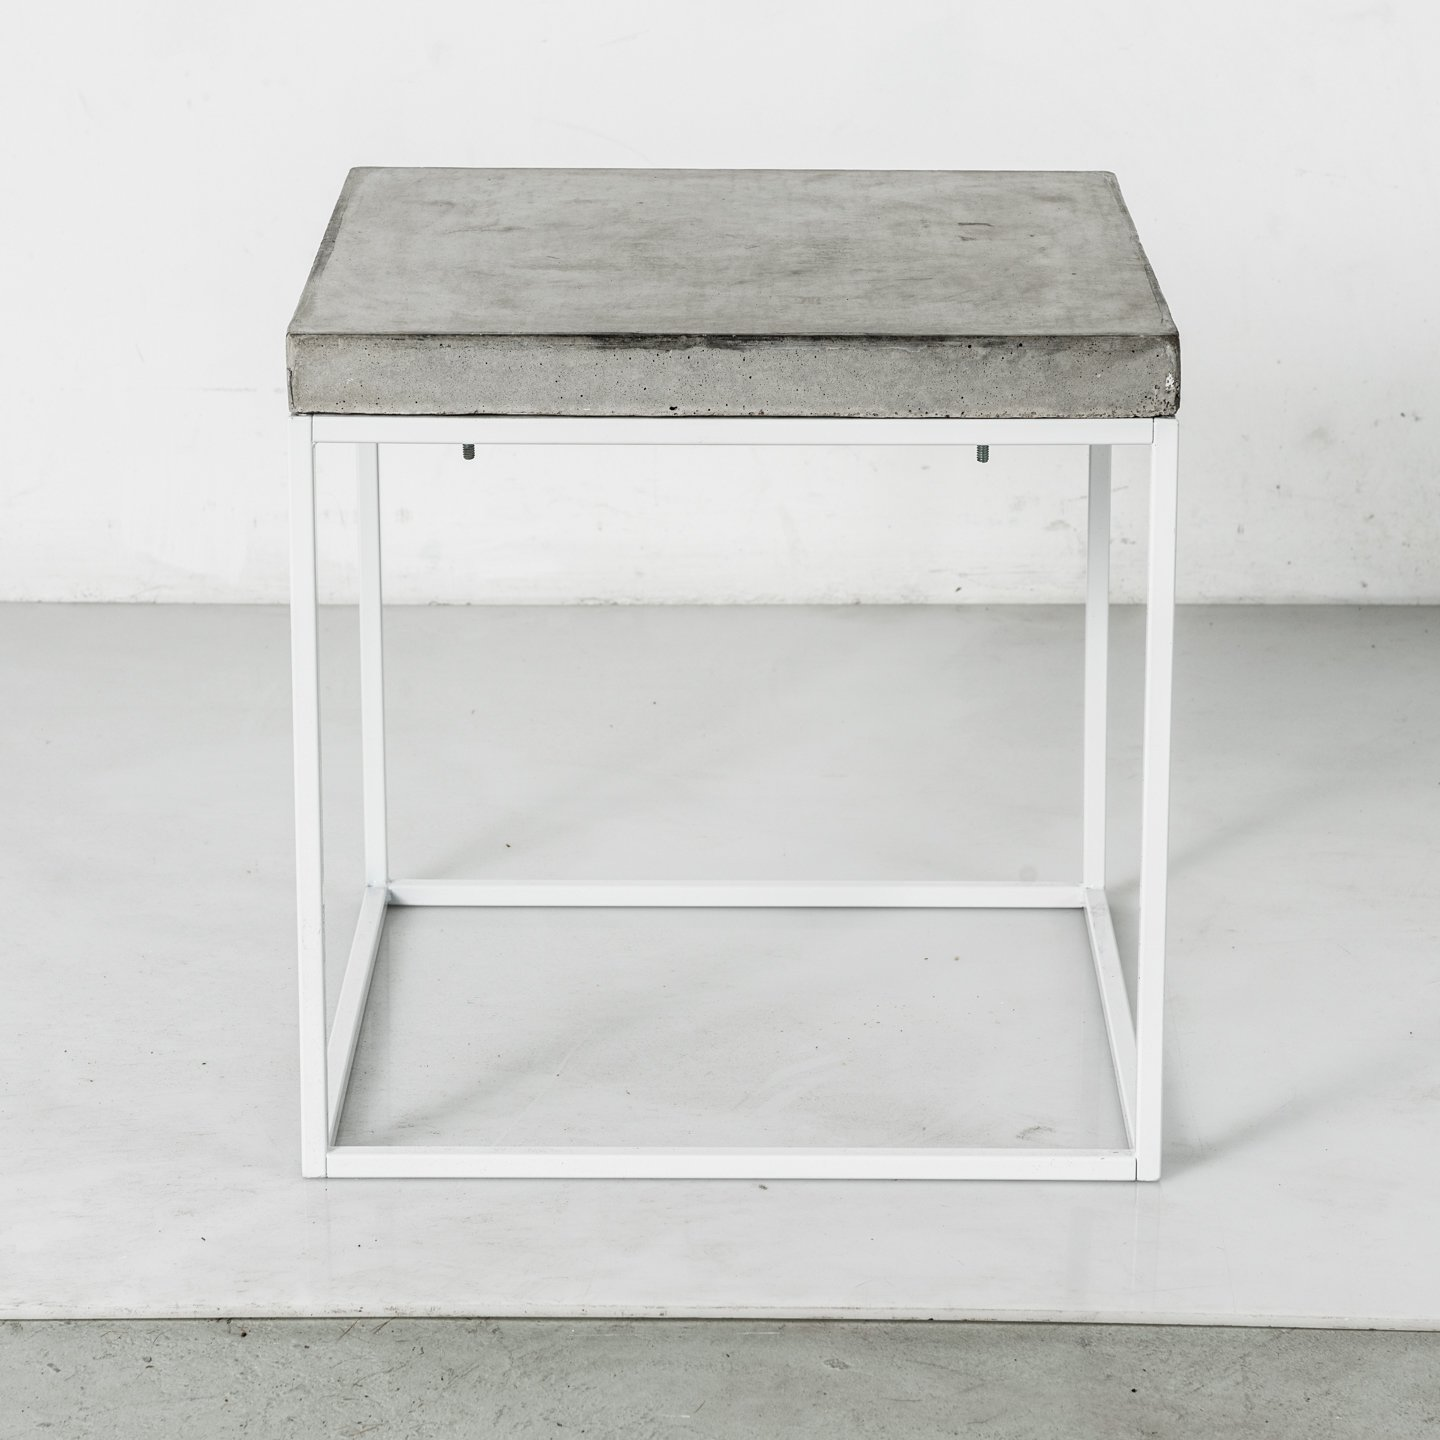 The Oakland table is topped by a raw-concrete slab.  Concrete Obsessed